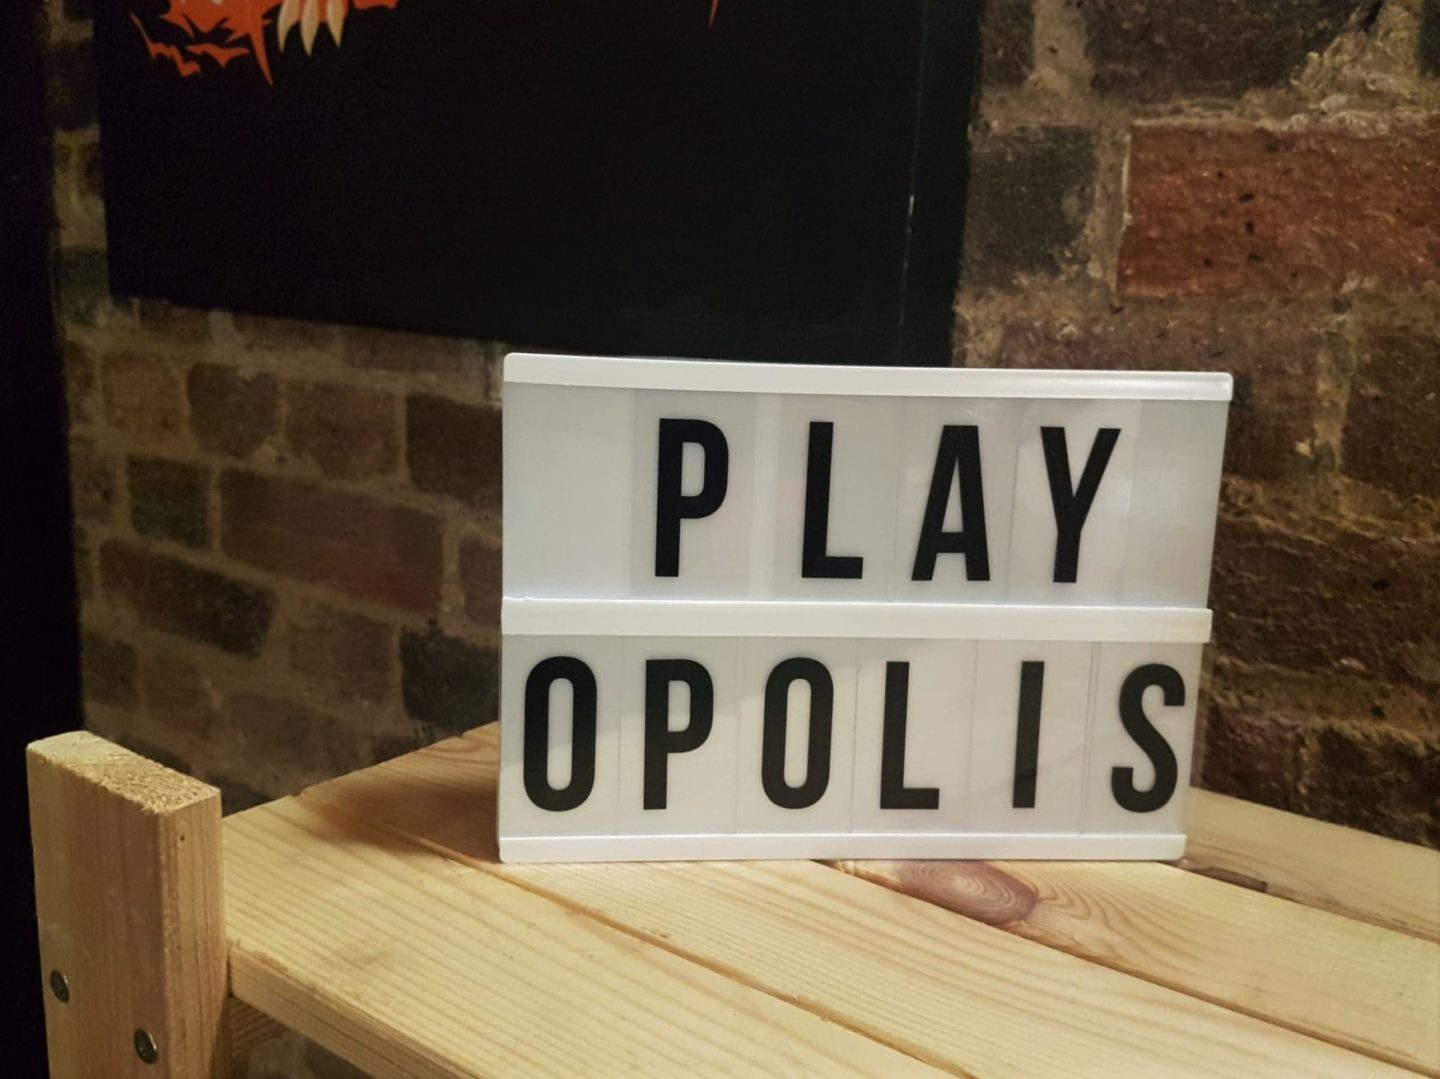 Playopolis light box - review of board game cafe in Rochester, Kent